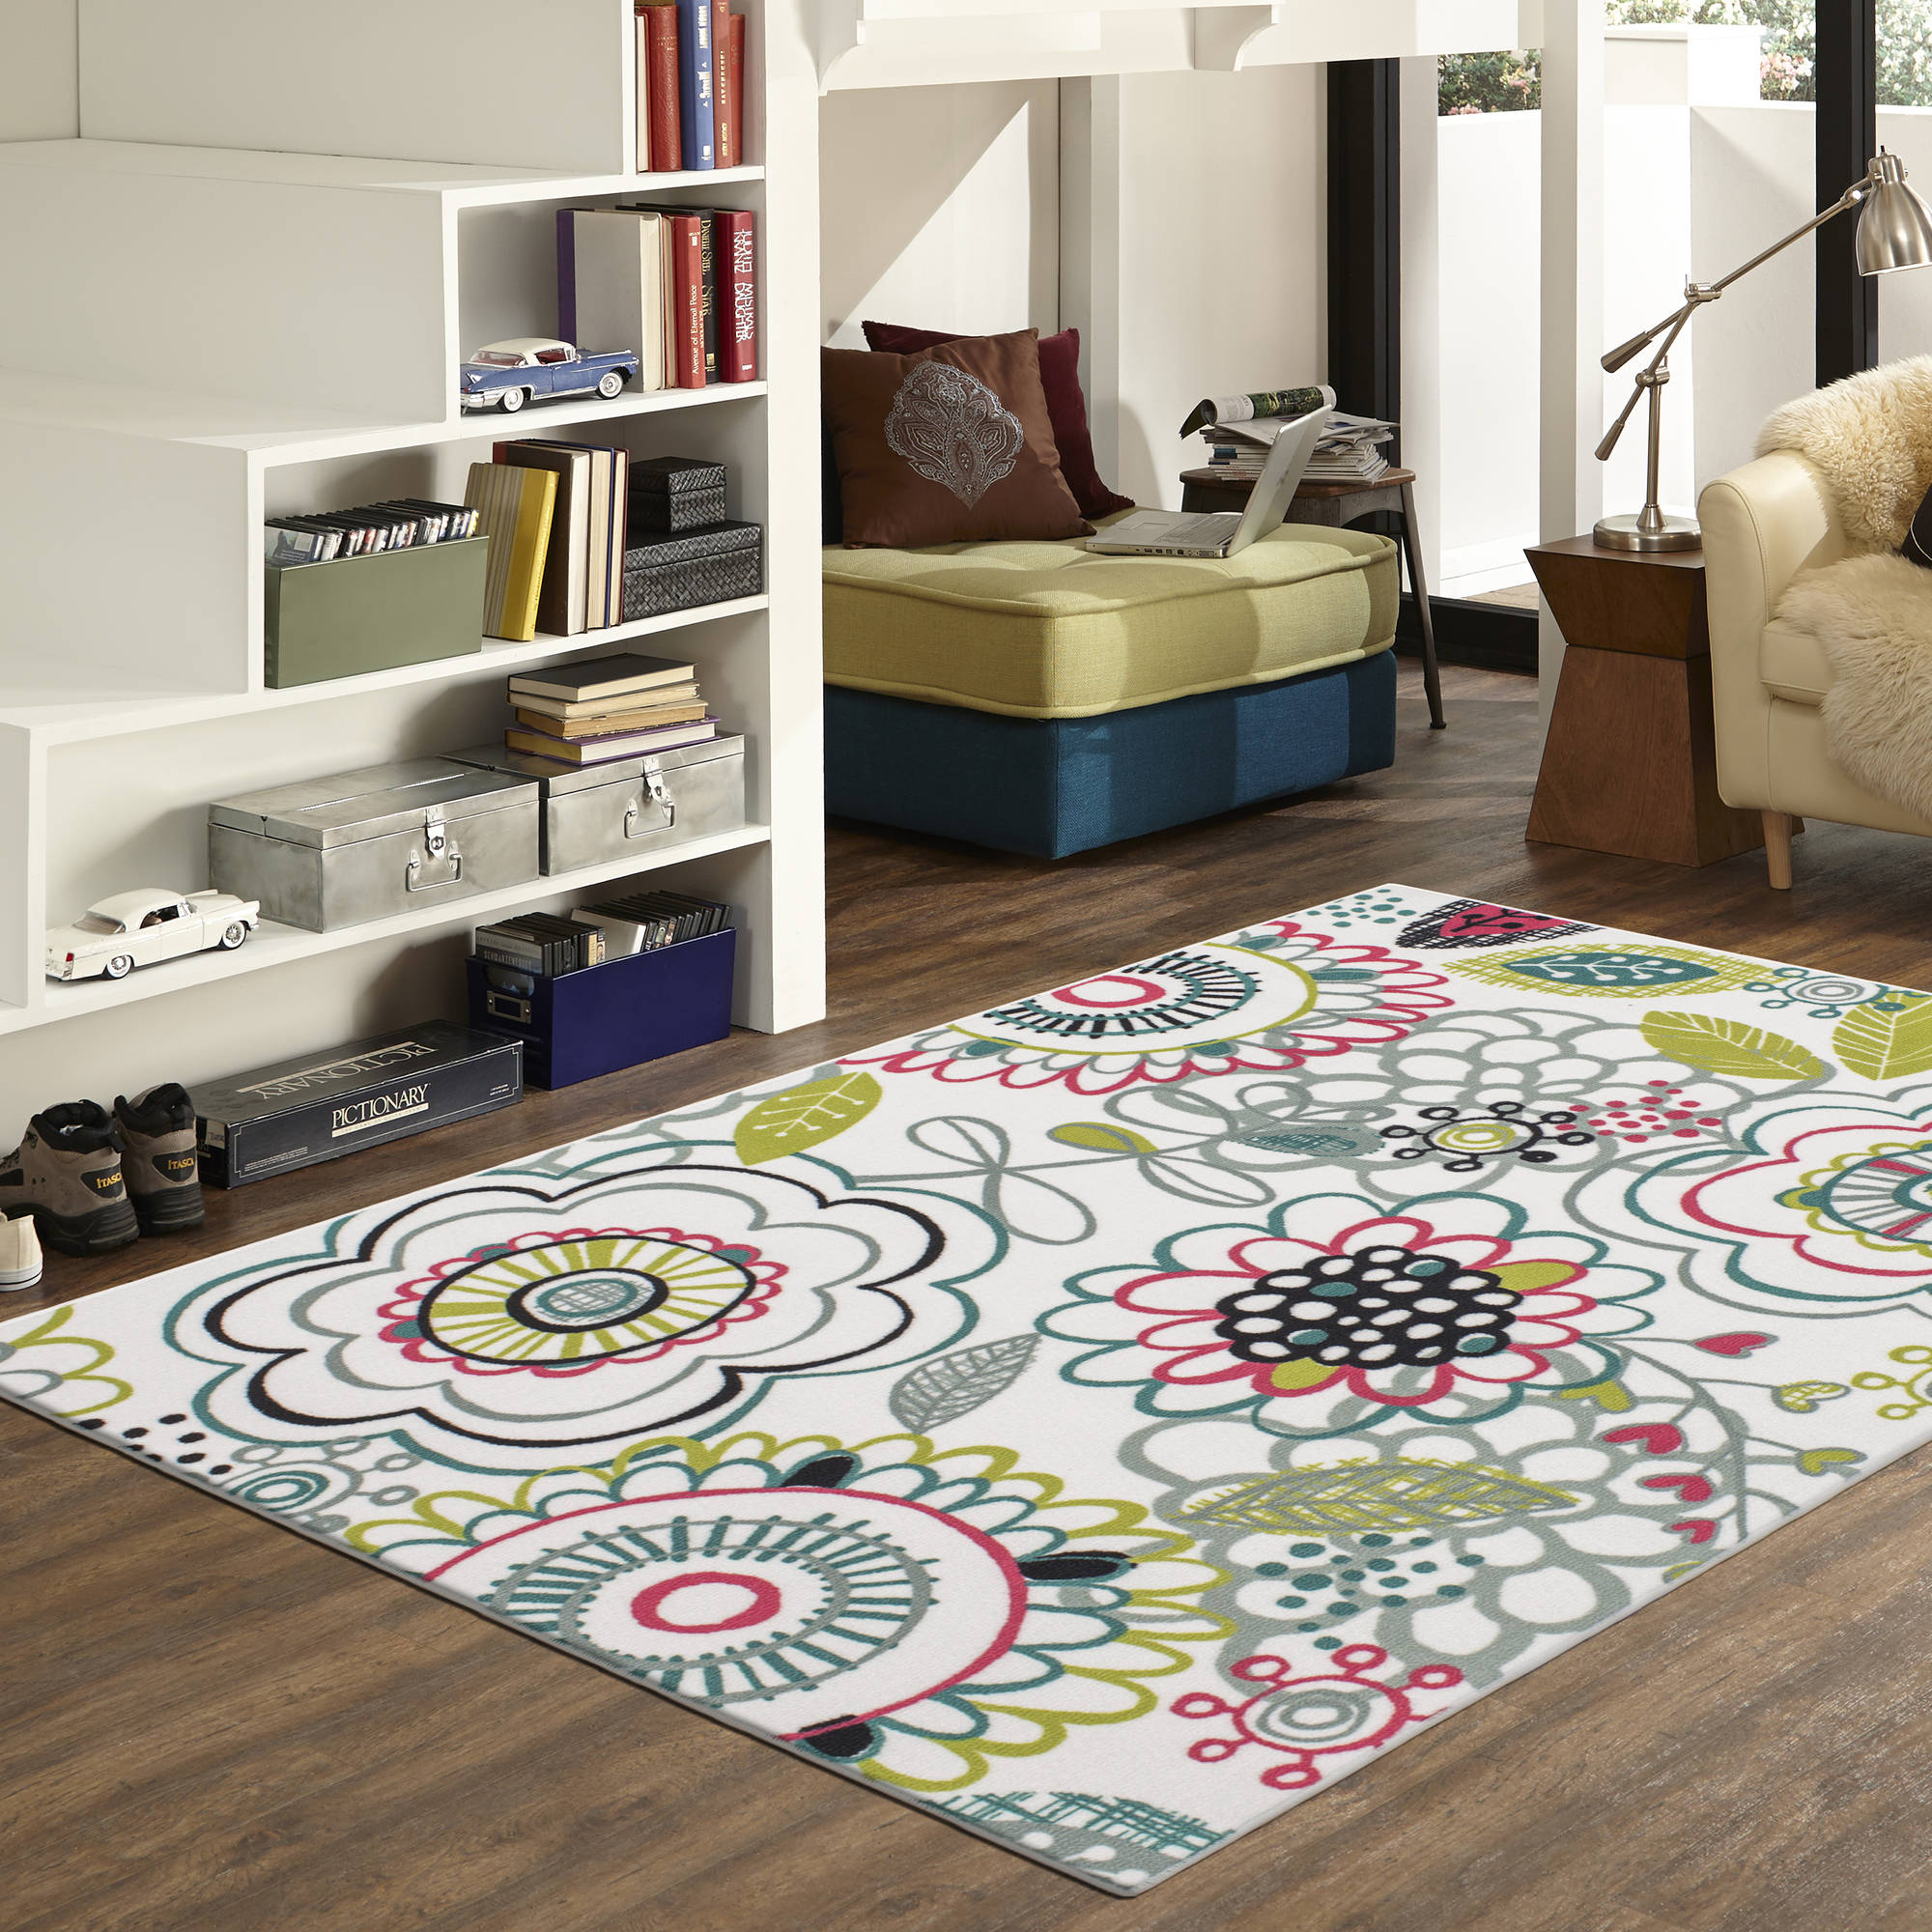 Mainstays Floral Fun Area Rug